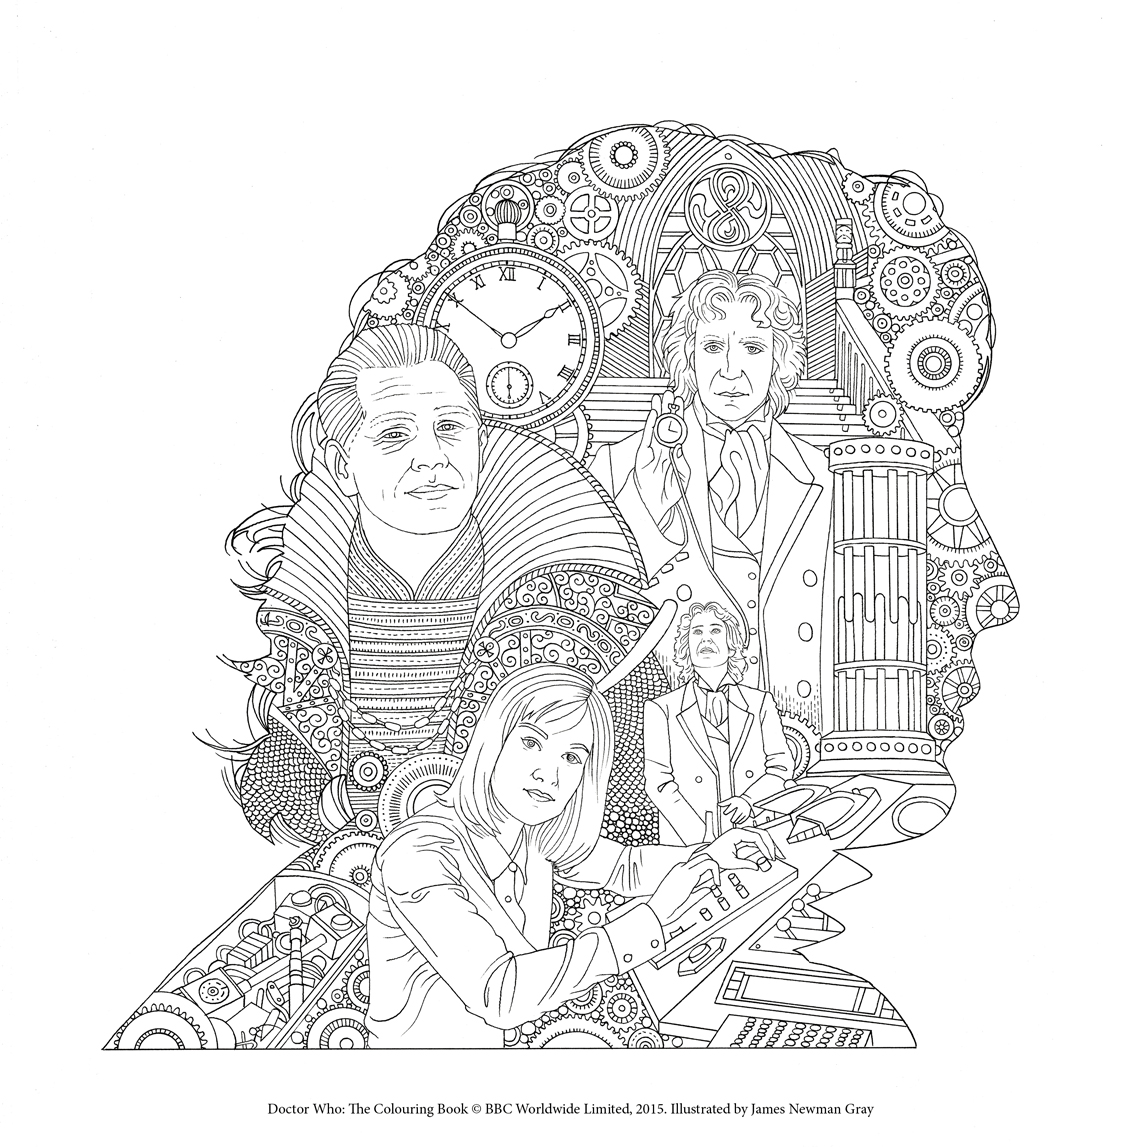 Adult coloring book with quotes - Doctor Who The Colouring Book Free Pattern Downloads Whsmith Blog